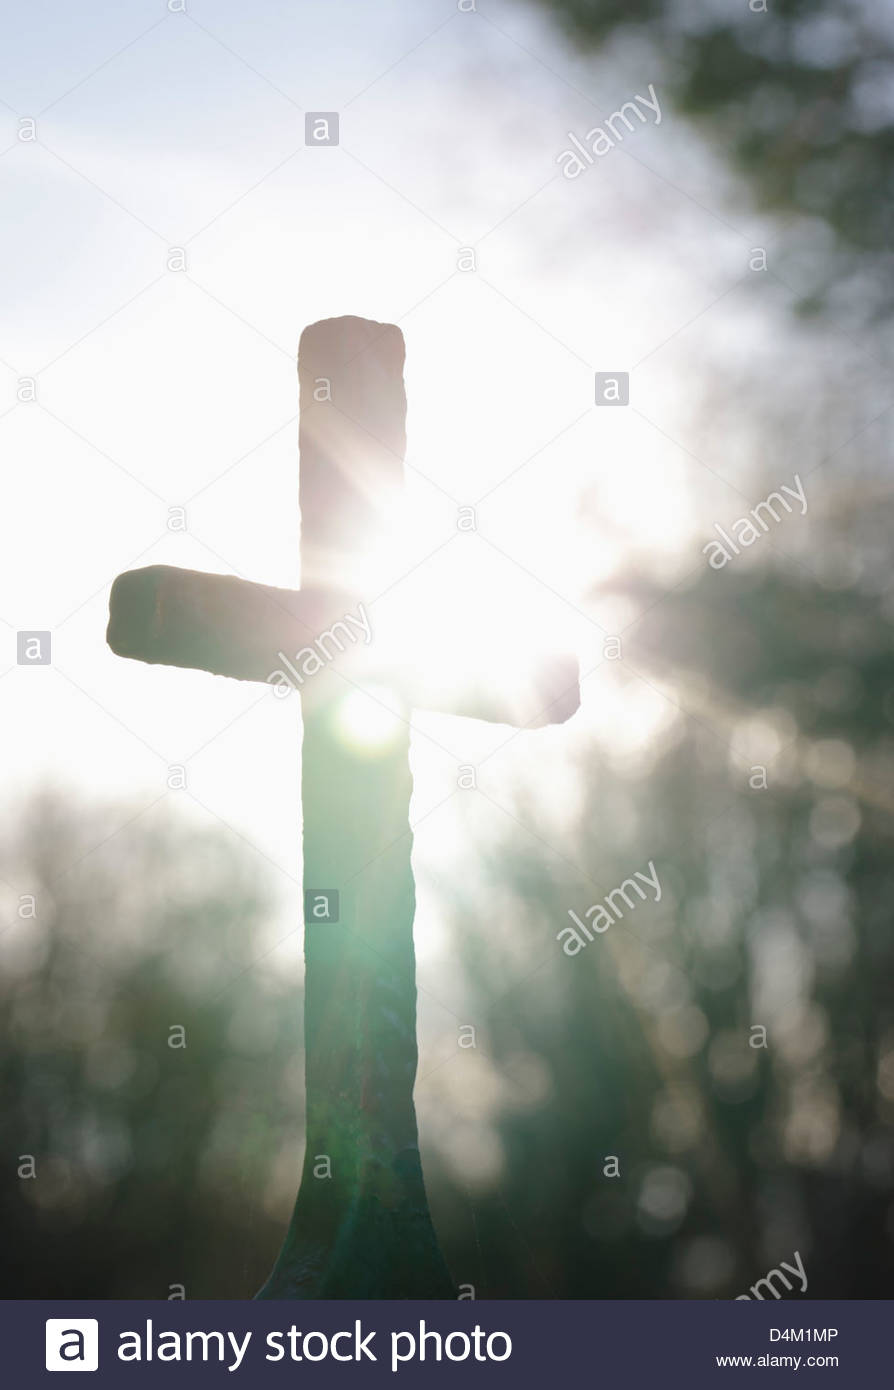 Silhouette of the holy cross on background of storm clouds stock - Sun Shining Over Cross Outdoors Stock Image